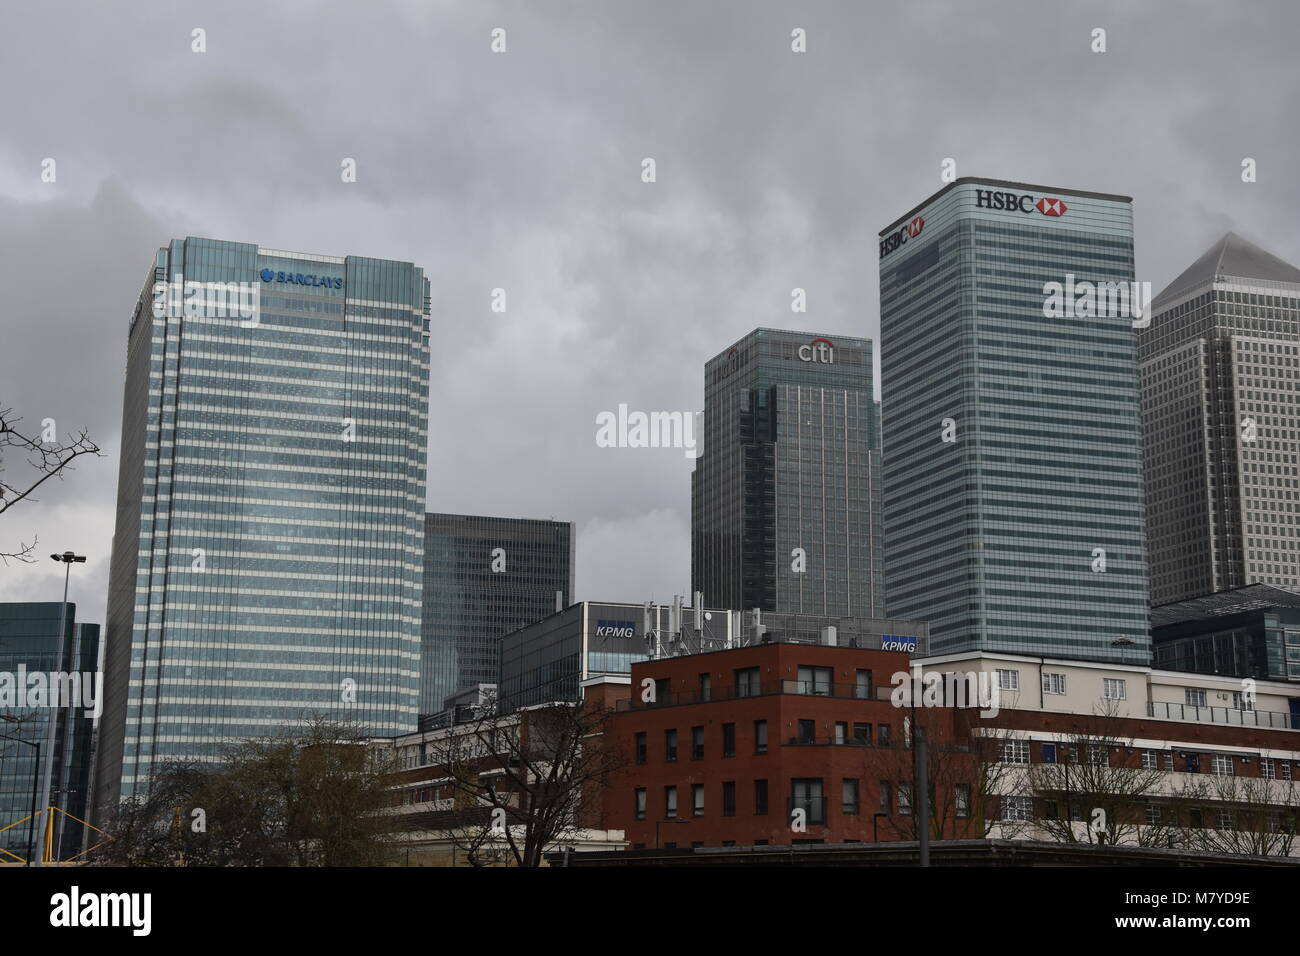 Exterior Barclays Bank HQ, plus office blocks, Canary Wharf, London - Stock Image